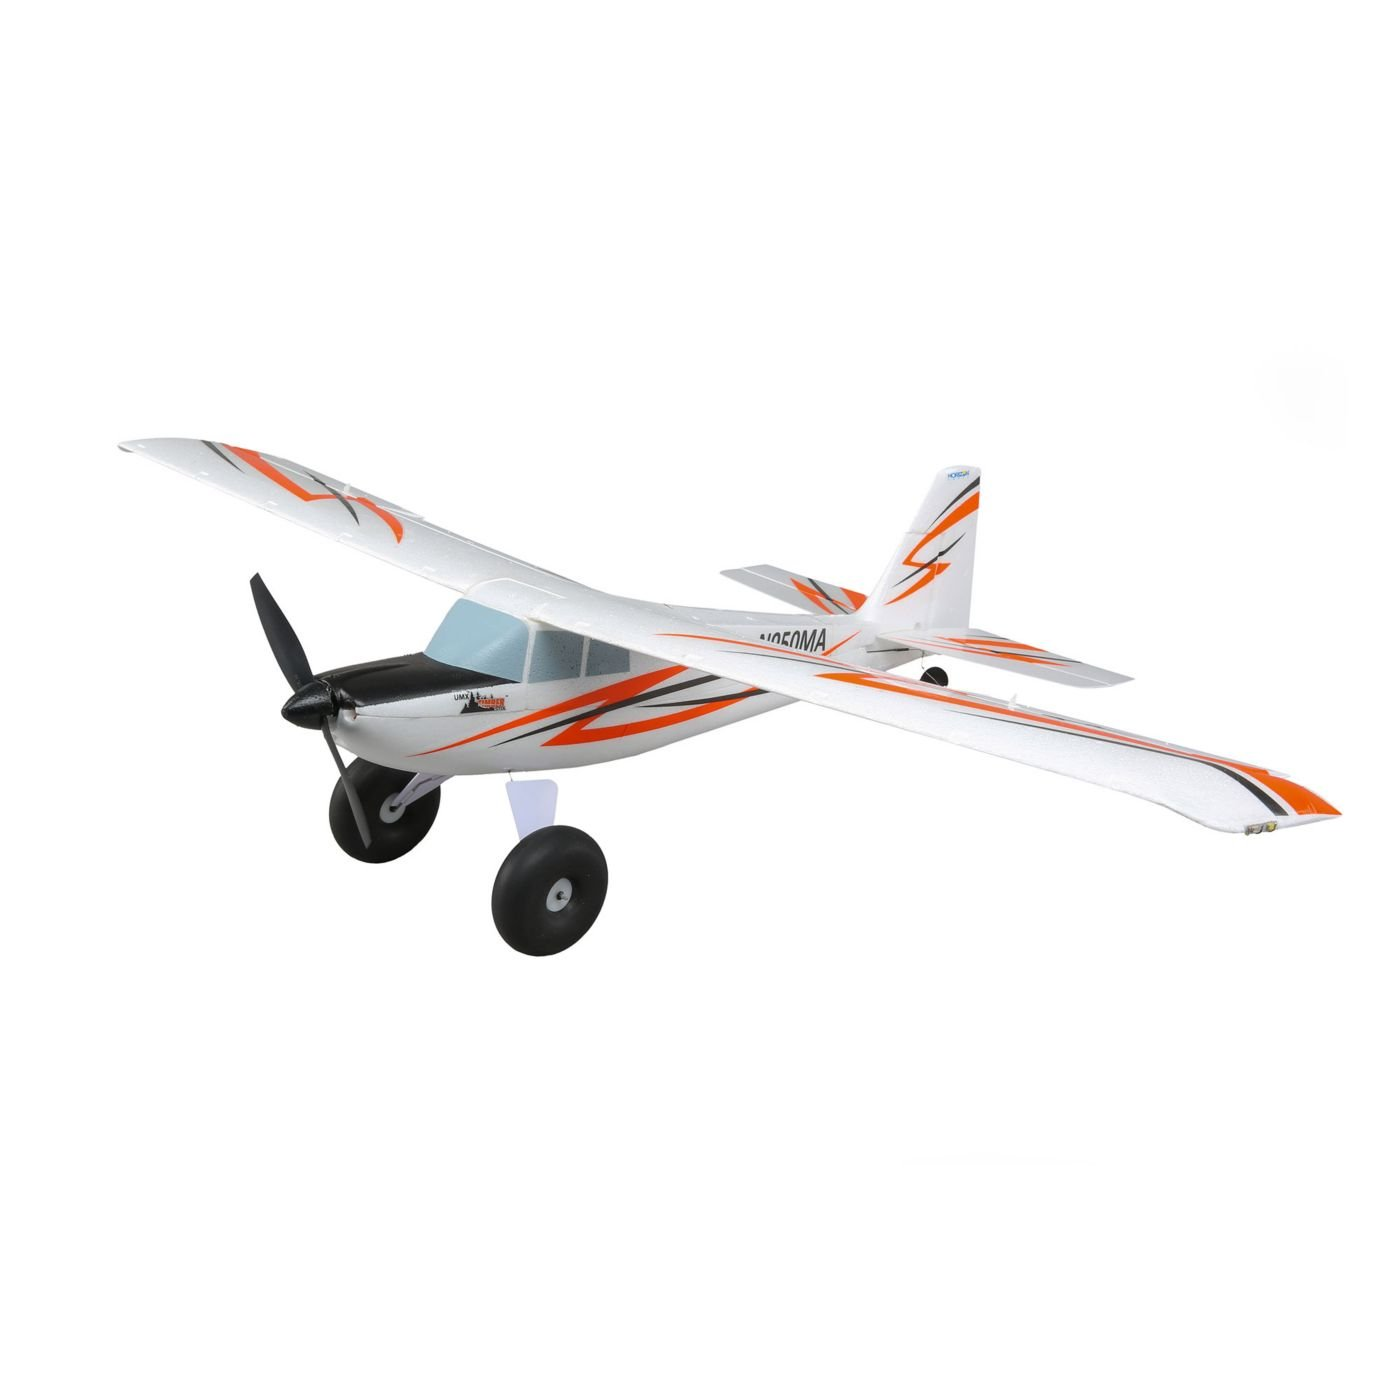 E-flite UMX Timber RC Airplane Ultra Micro STOL BNF Basic with Safe Select | AS3X Rx | LED Lights (Transmitter, Battery, and Charger Not Included)